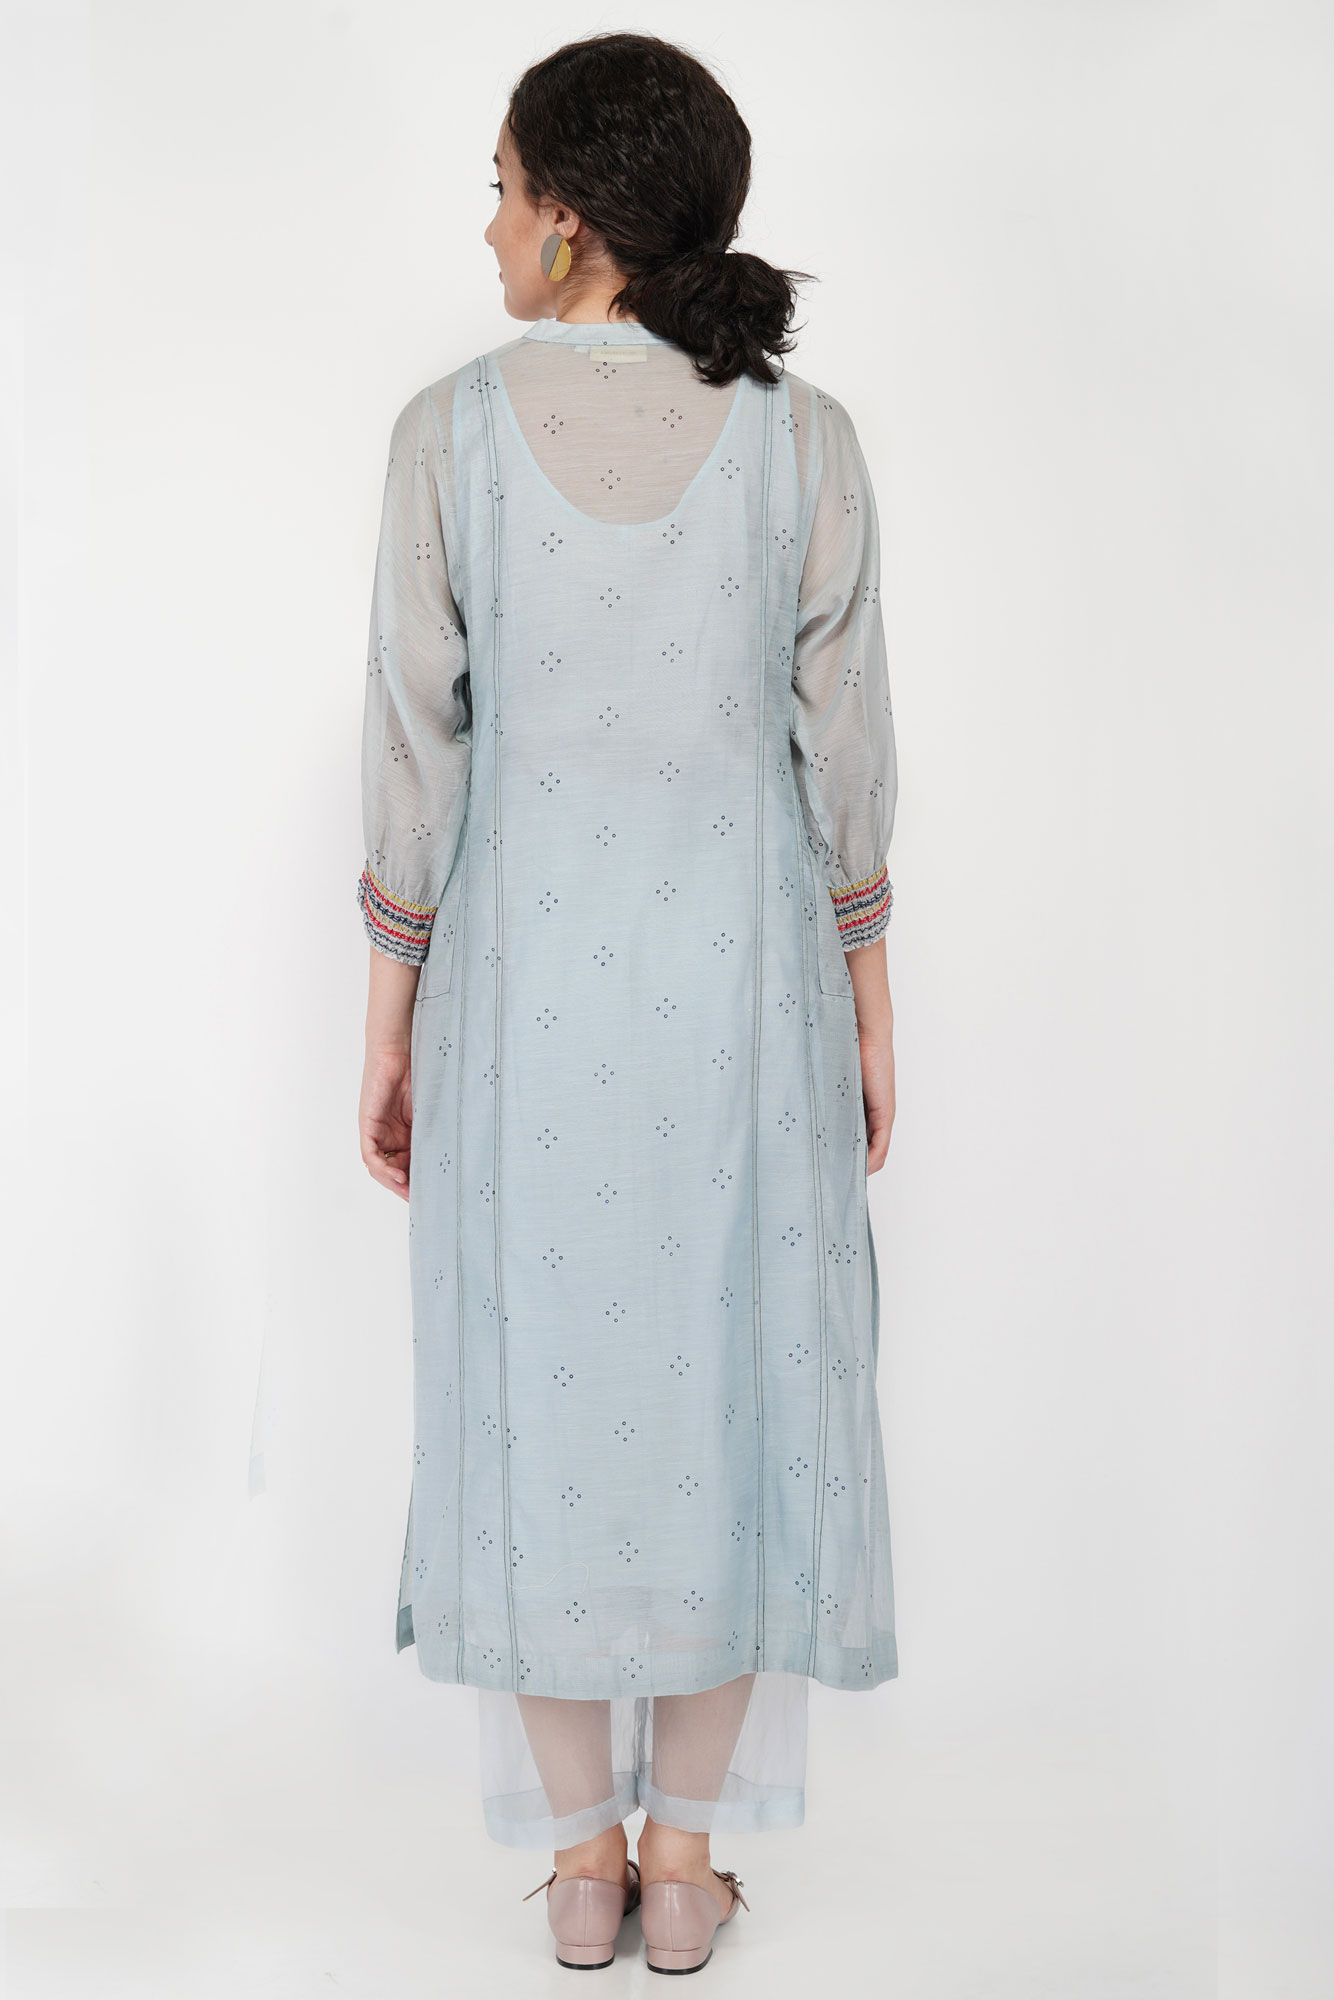 Abstract Yoke Kali Kurta